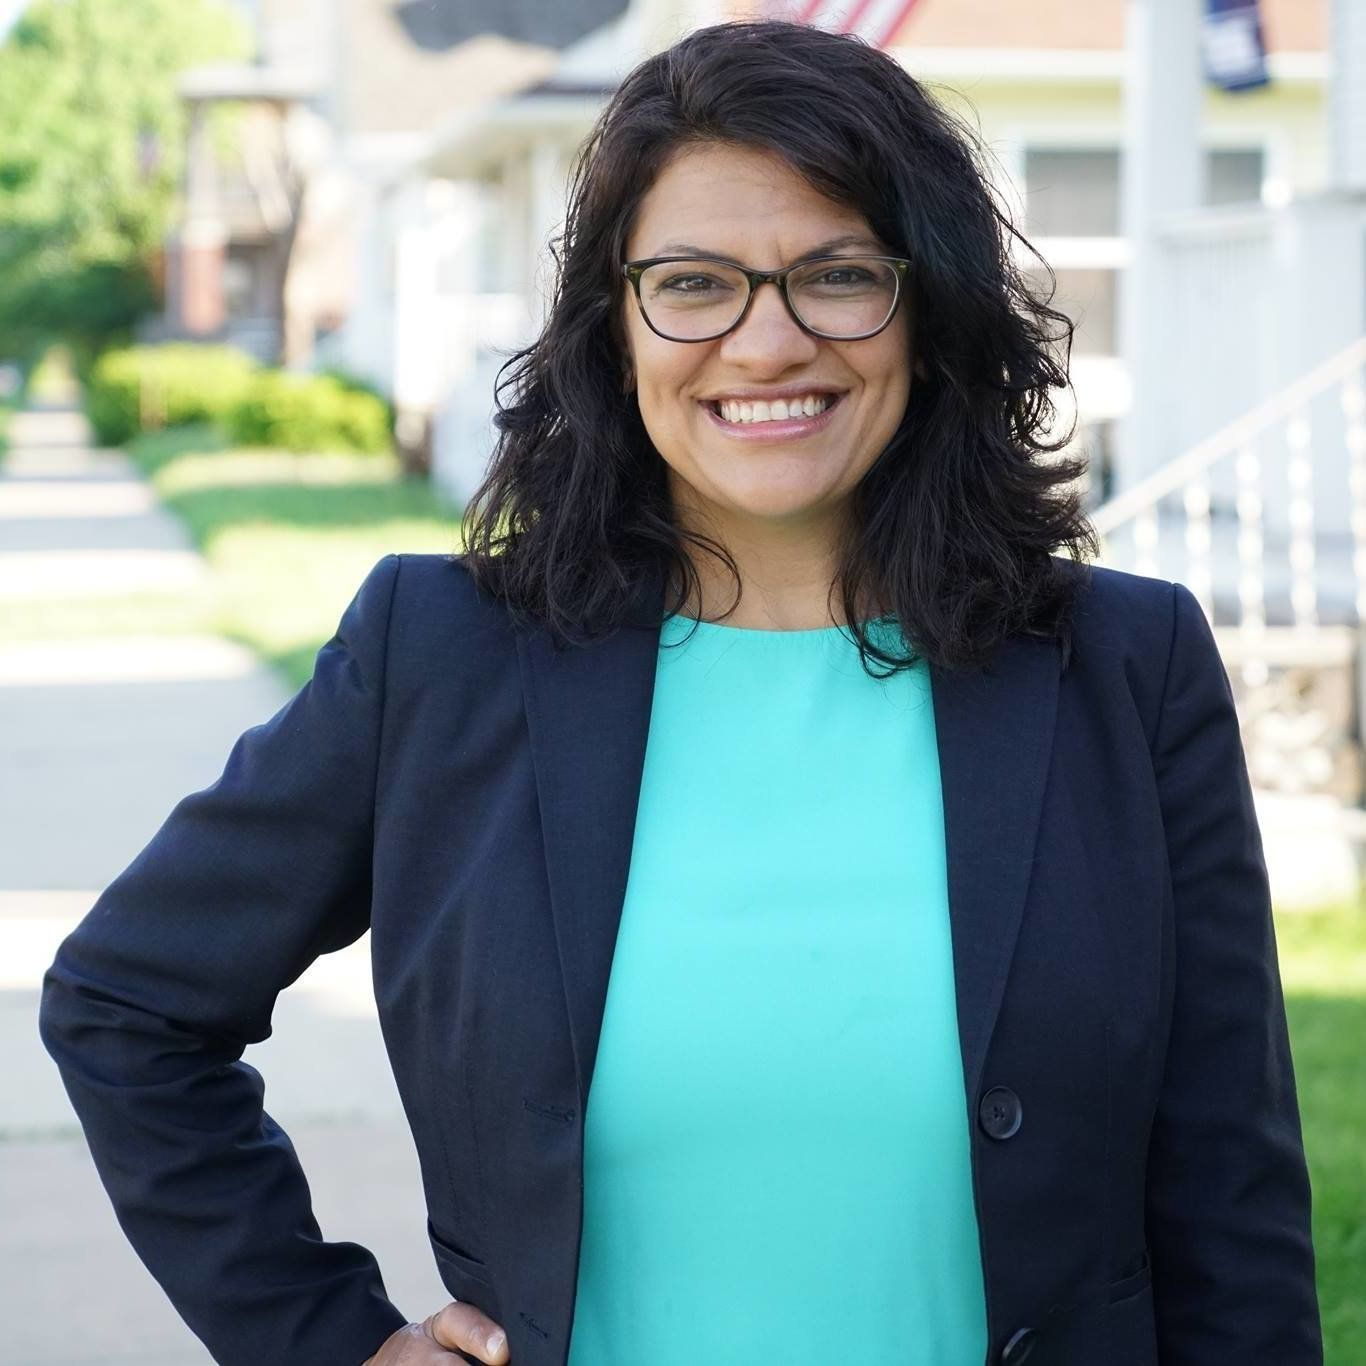 Rashida Tlaib won the Democratic primary for Michigans 13th Congressional District on Tuesday making her the first Muslim woman in Congress